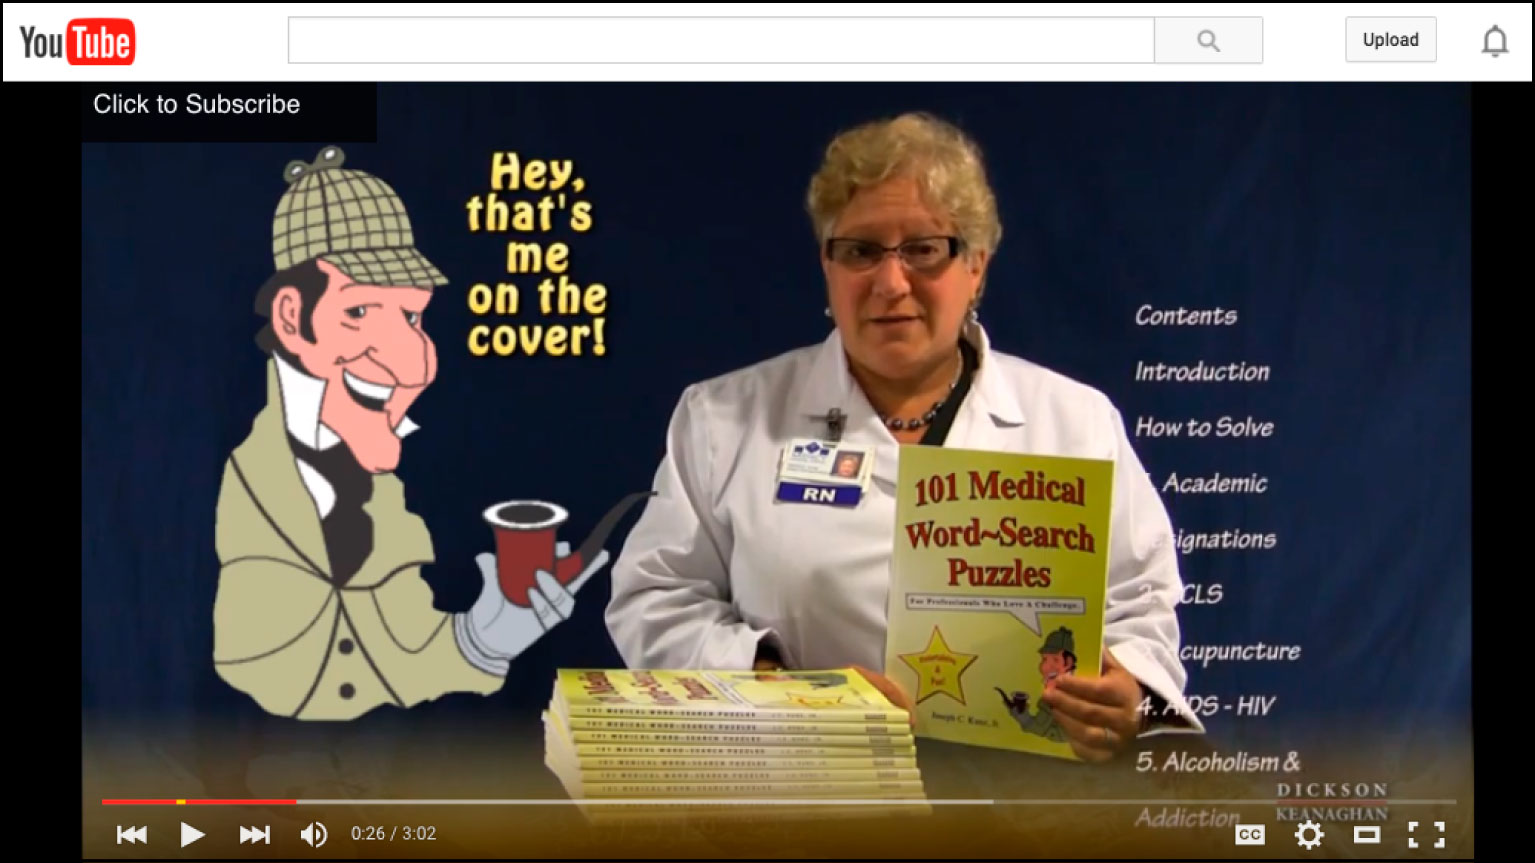 YouTube Video Of 101 Medical Word-Search Puzzles, by Joseph C. Kunz, Jr.